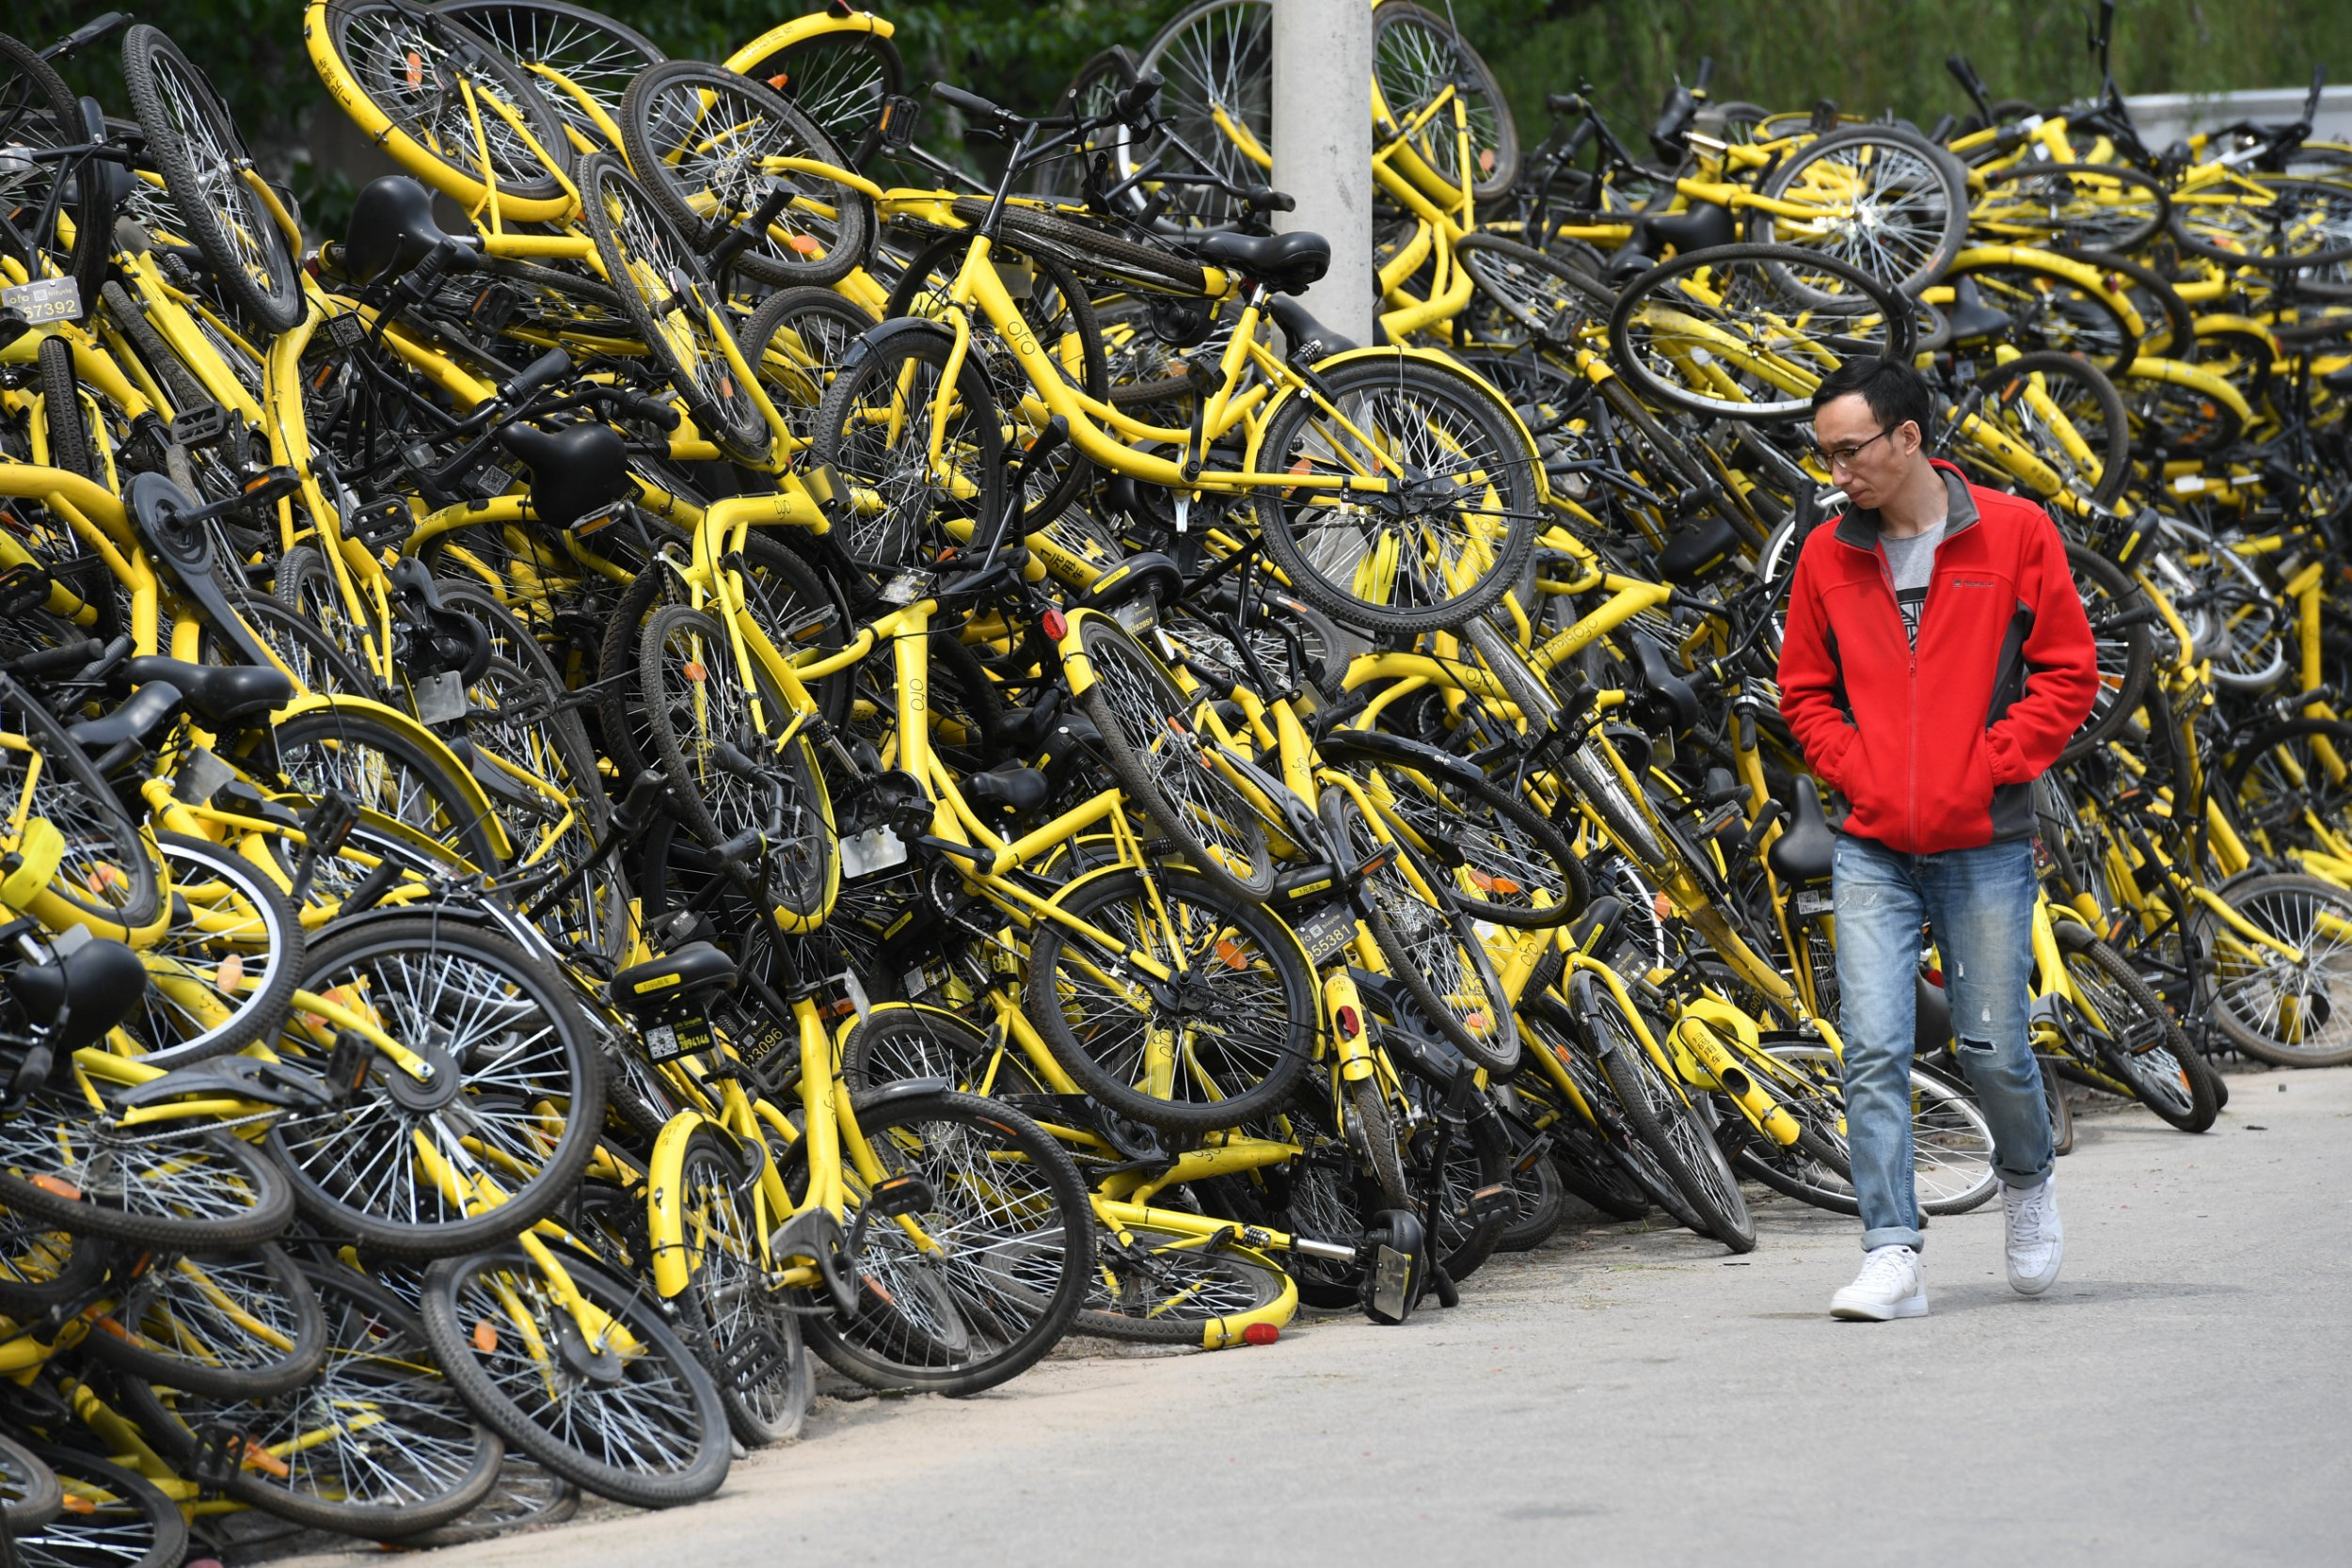 These images of abandoned dockless share bikes in China are astonishing